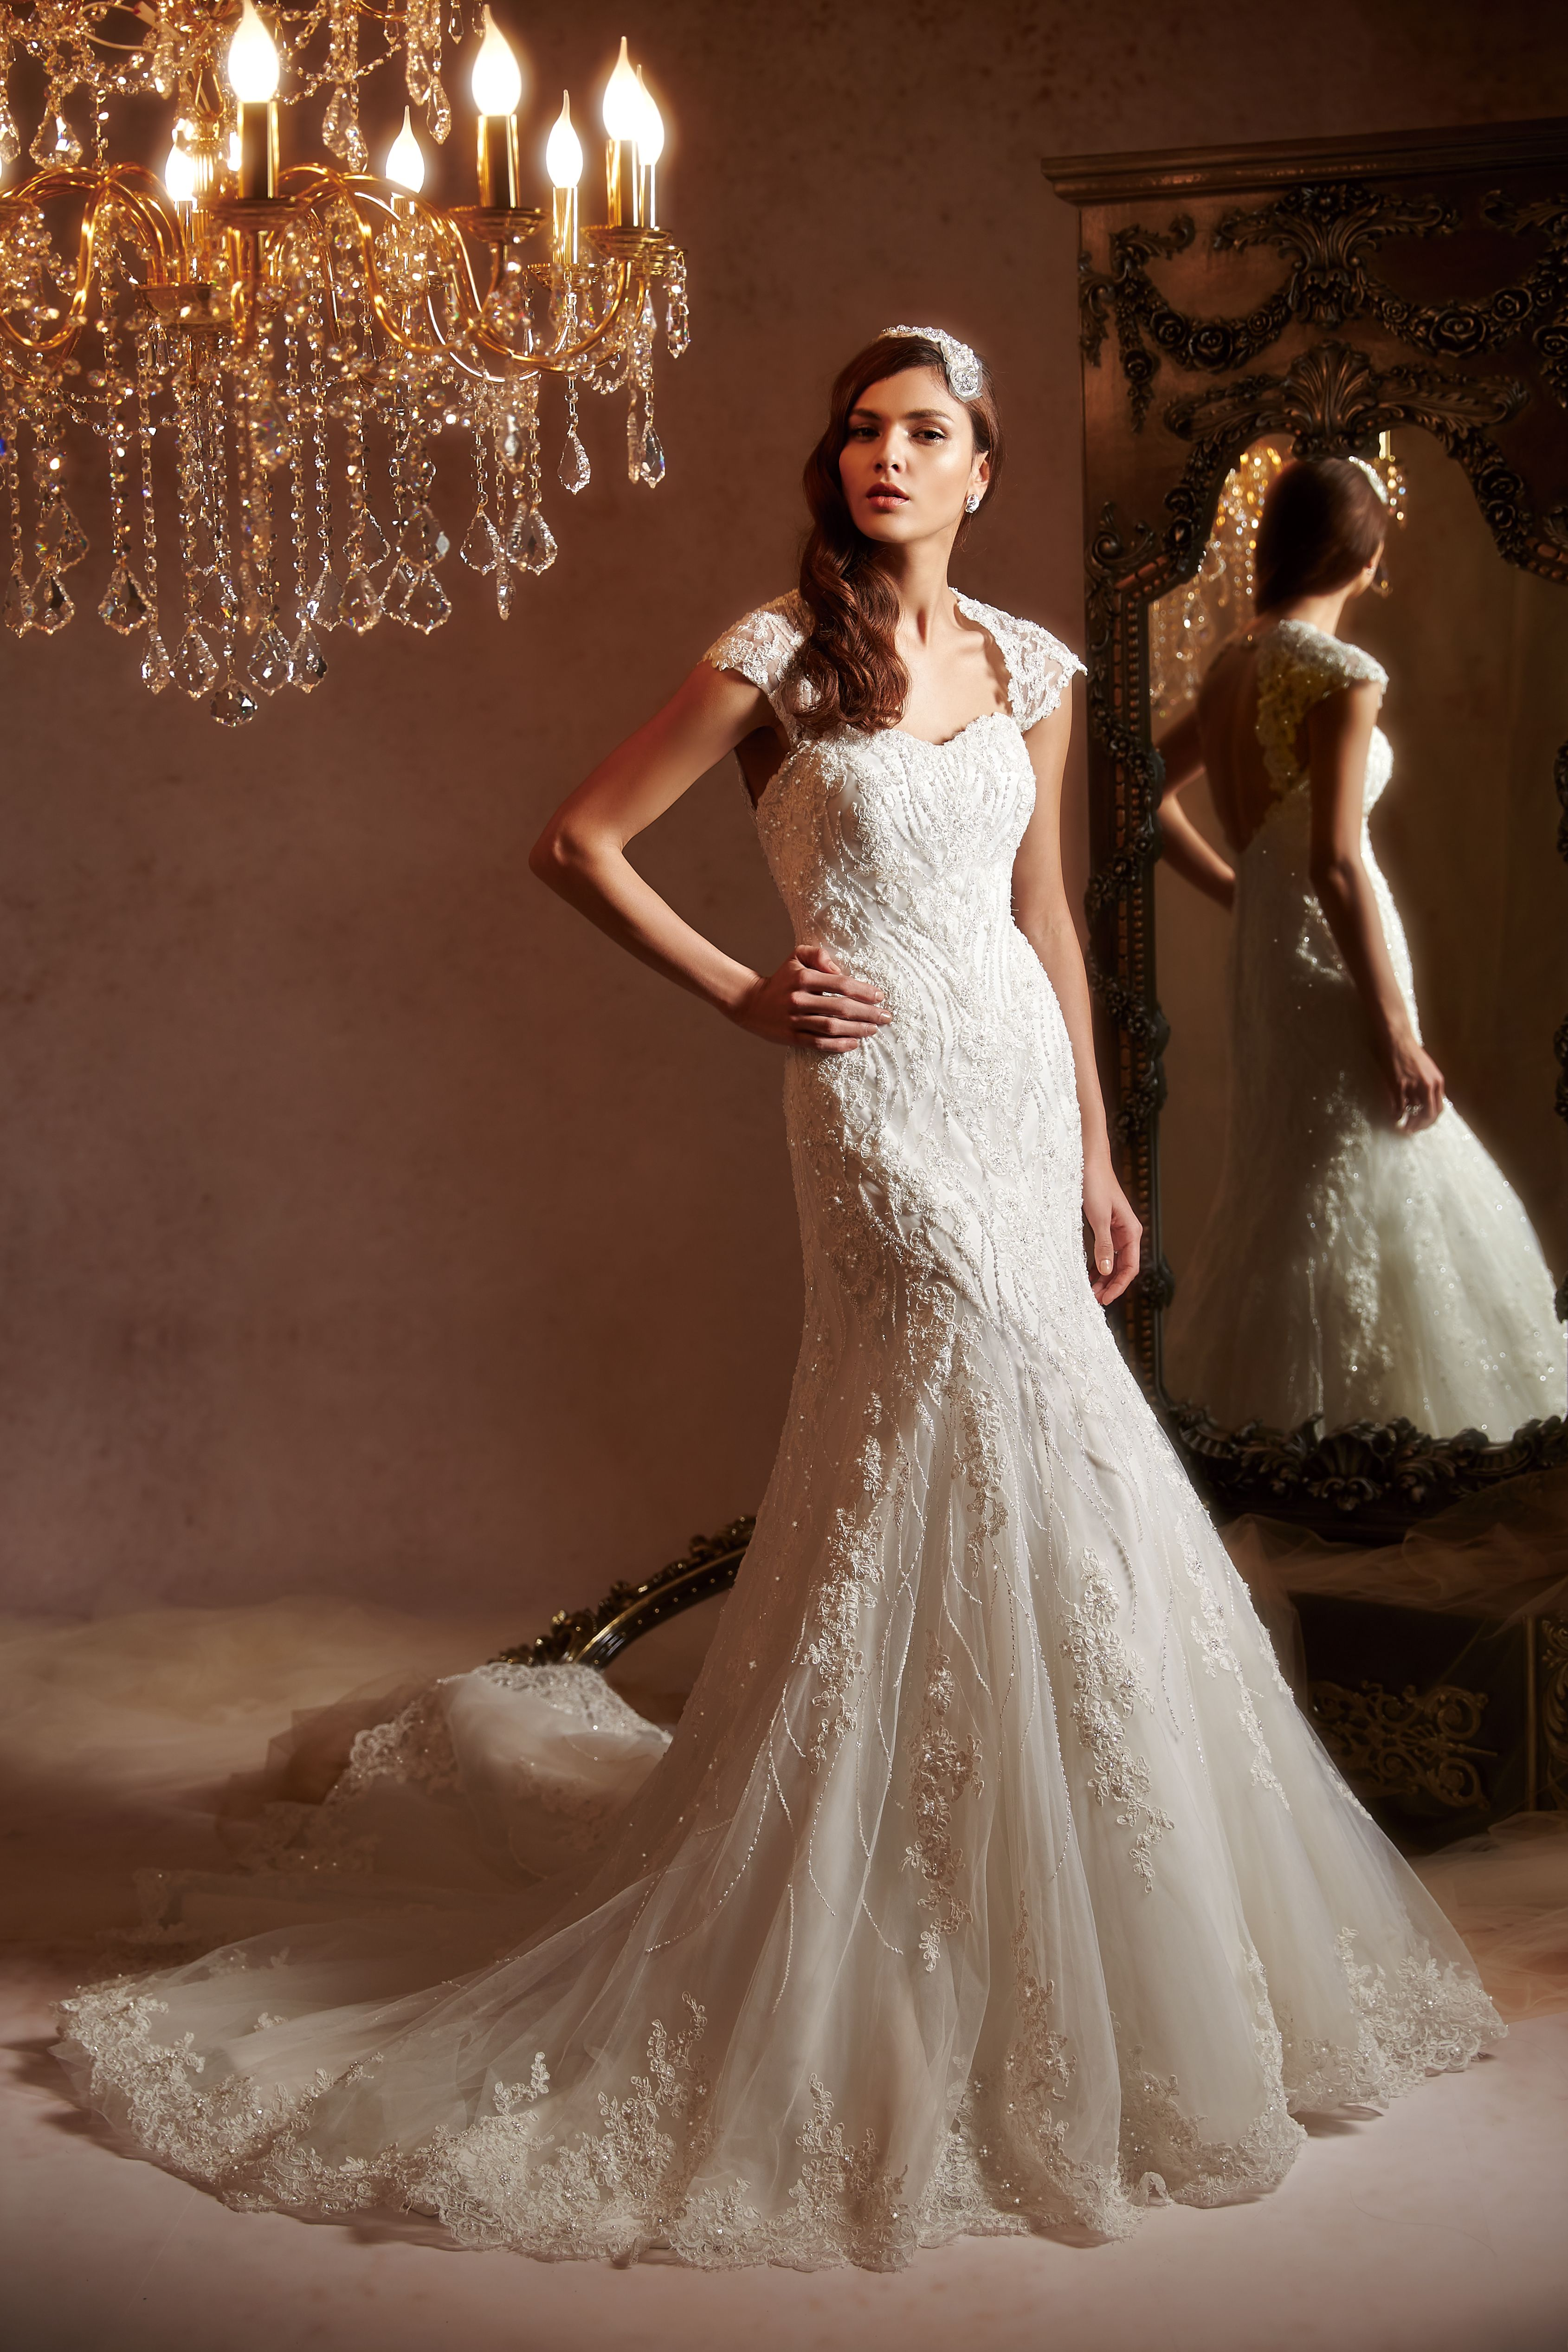 Fishtail wedding dress  Glamorous lace fishtail gown with detachable shoulder detail